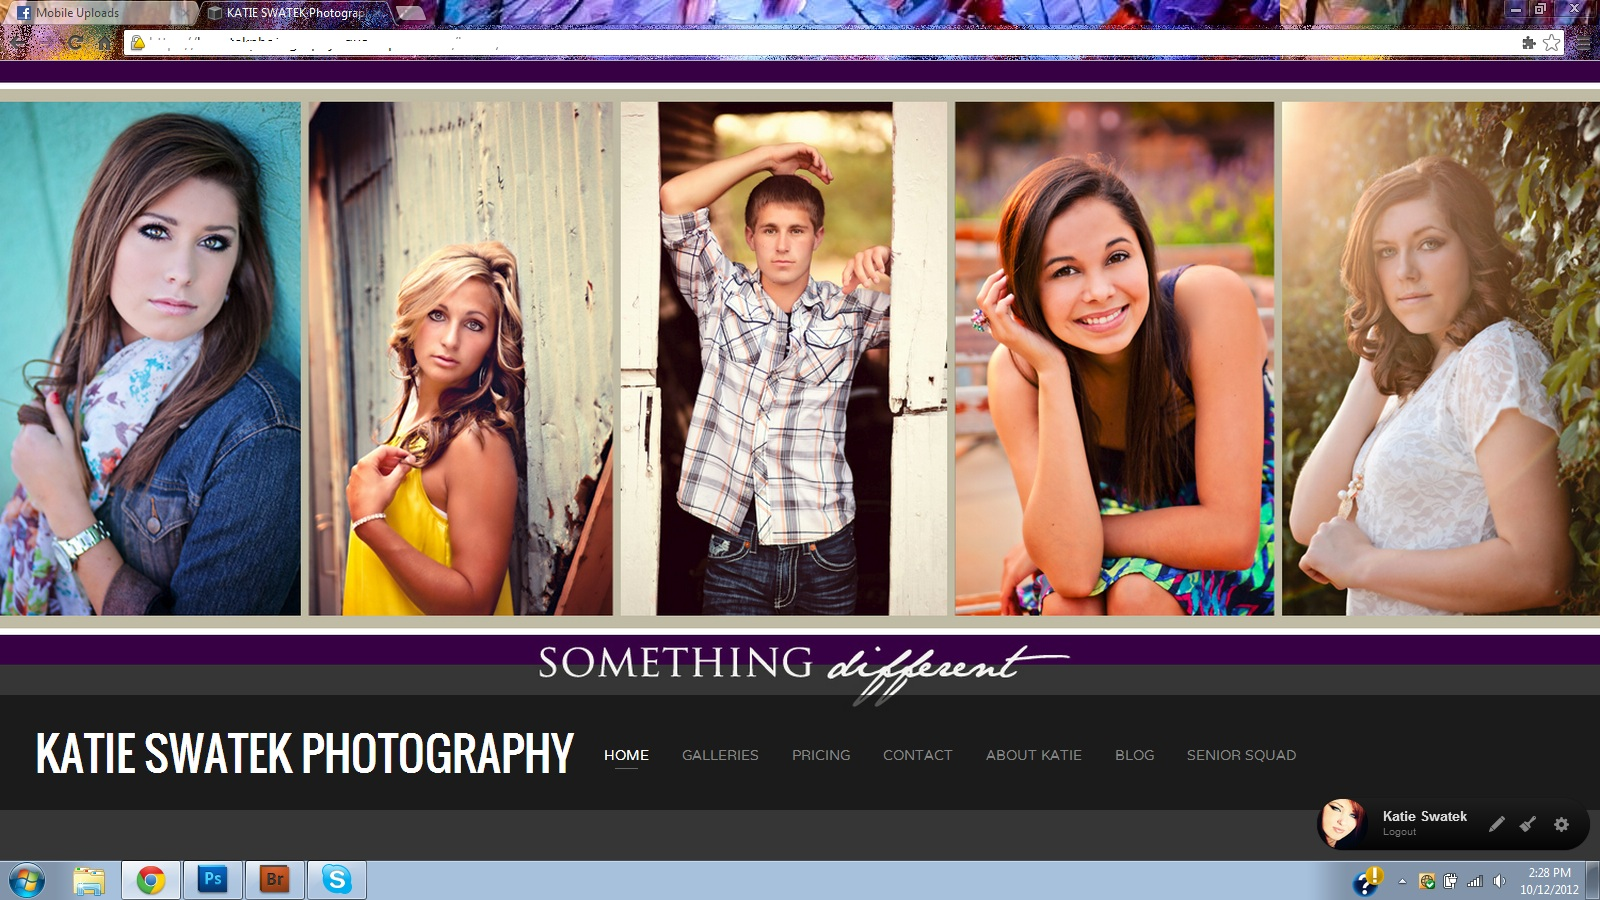 PS -- don't my seniors look awesome on the home page?!